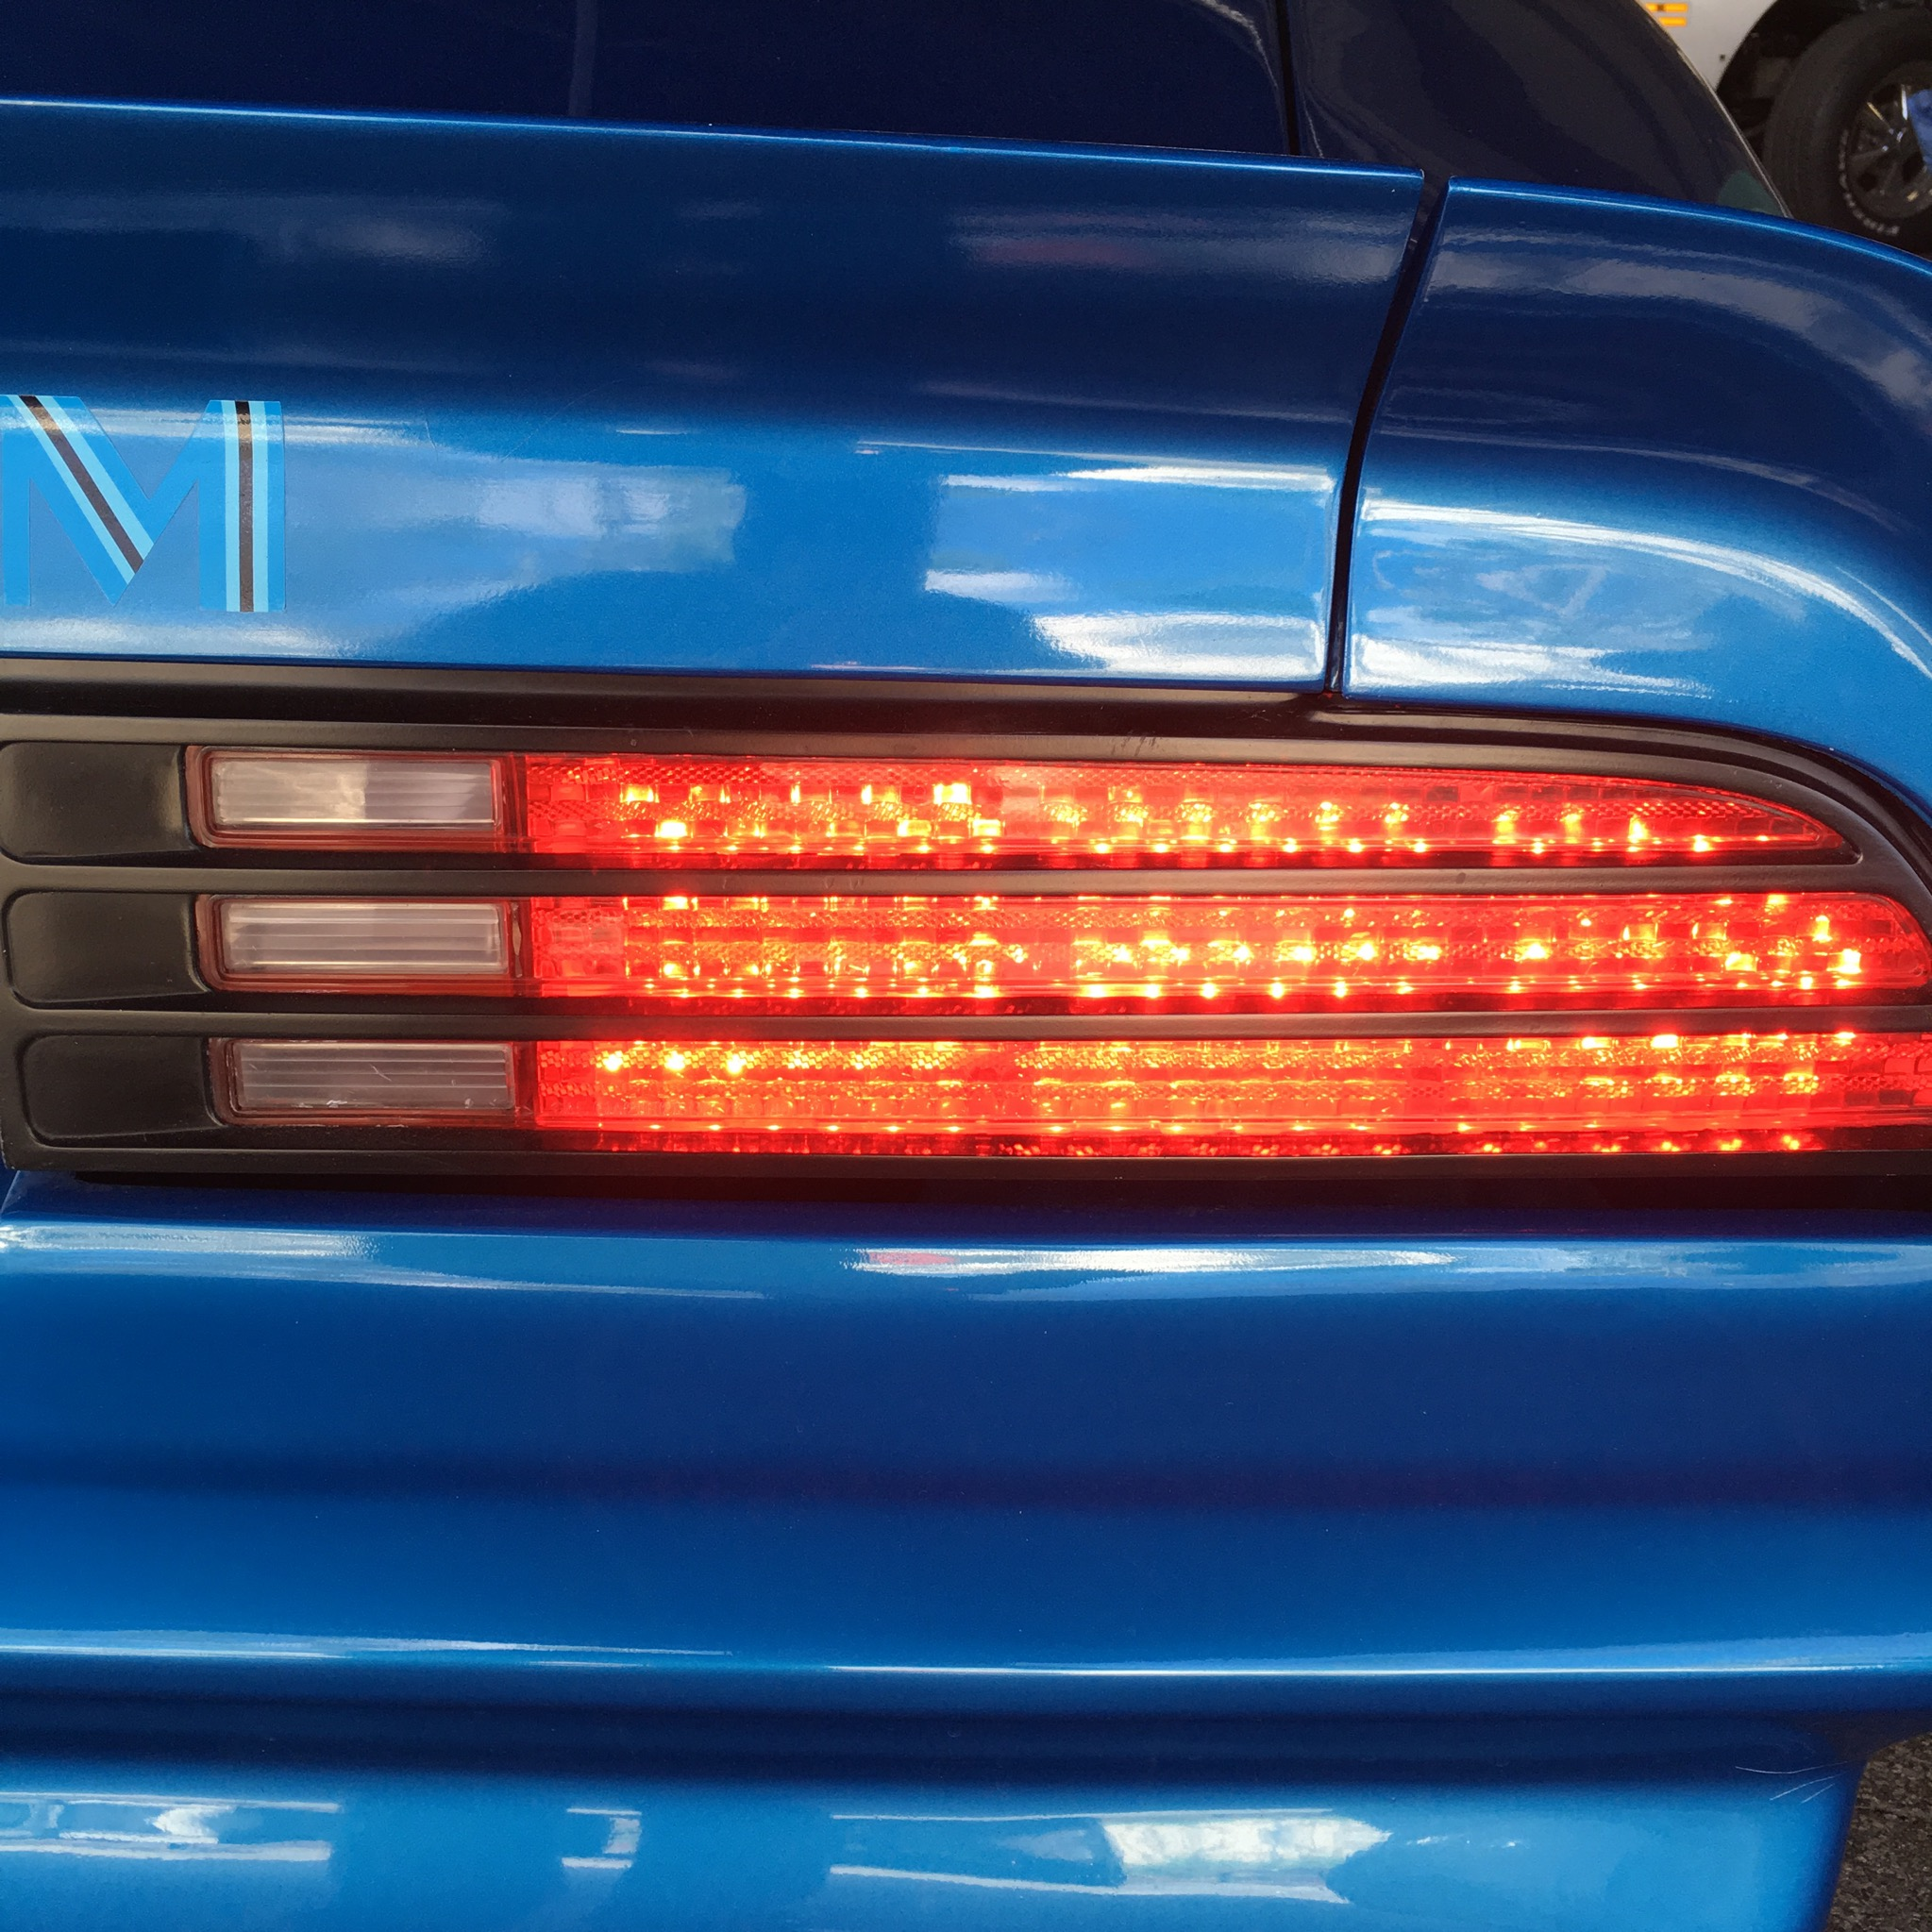 Premium Led Tail Lamp Kit For Firebird Trans Am 74 78 98 To 02 1975 Pontiac Quick View